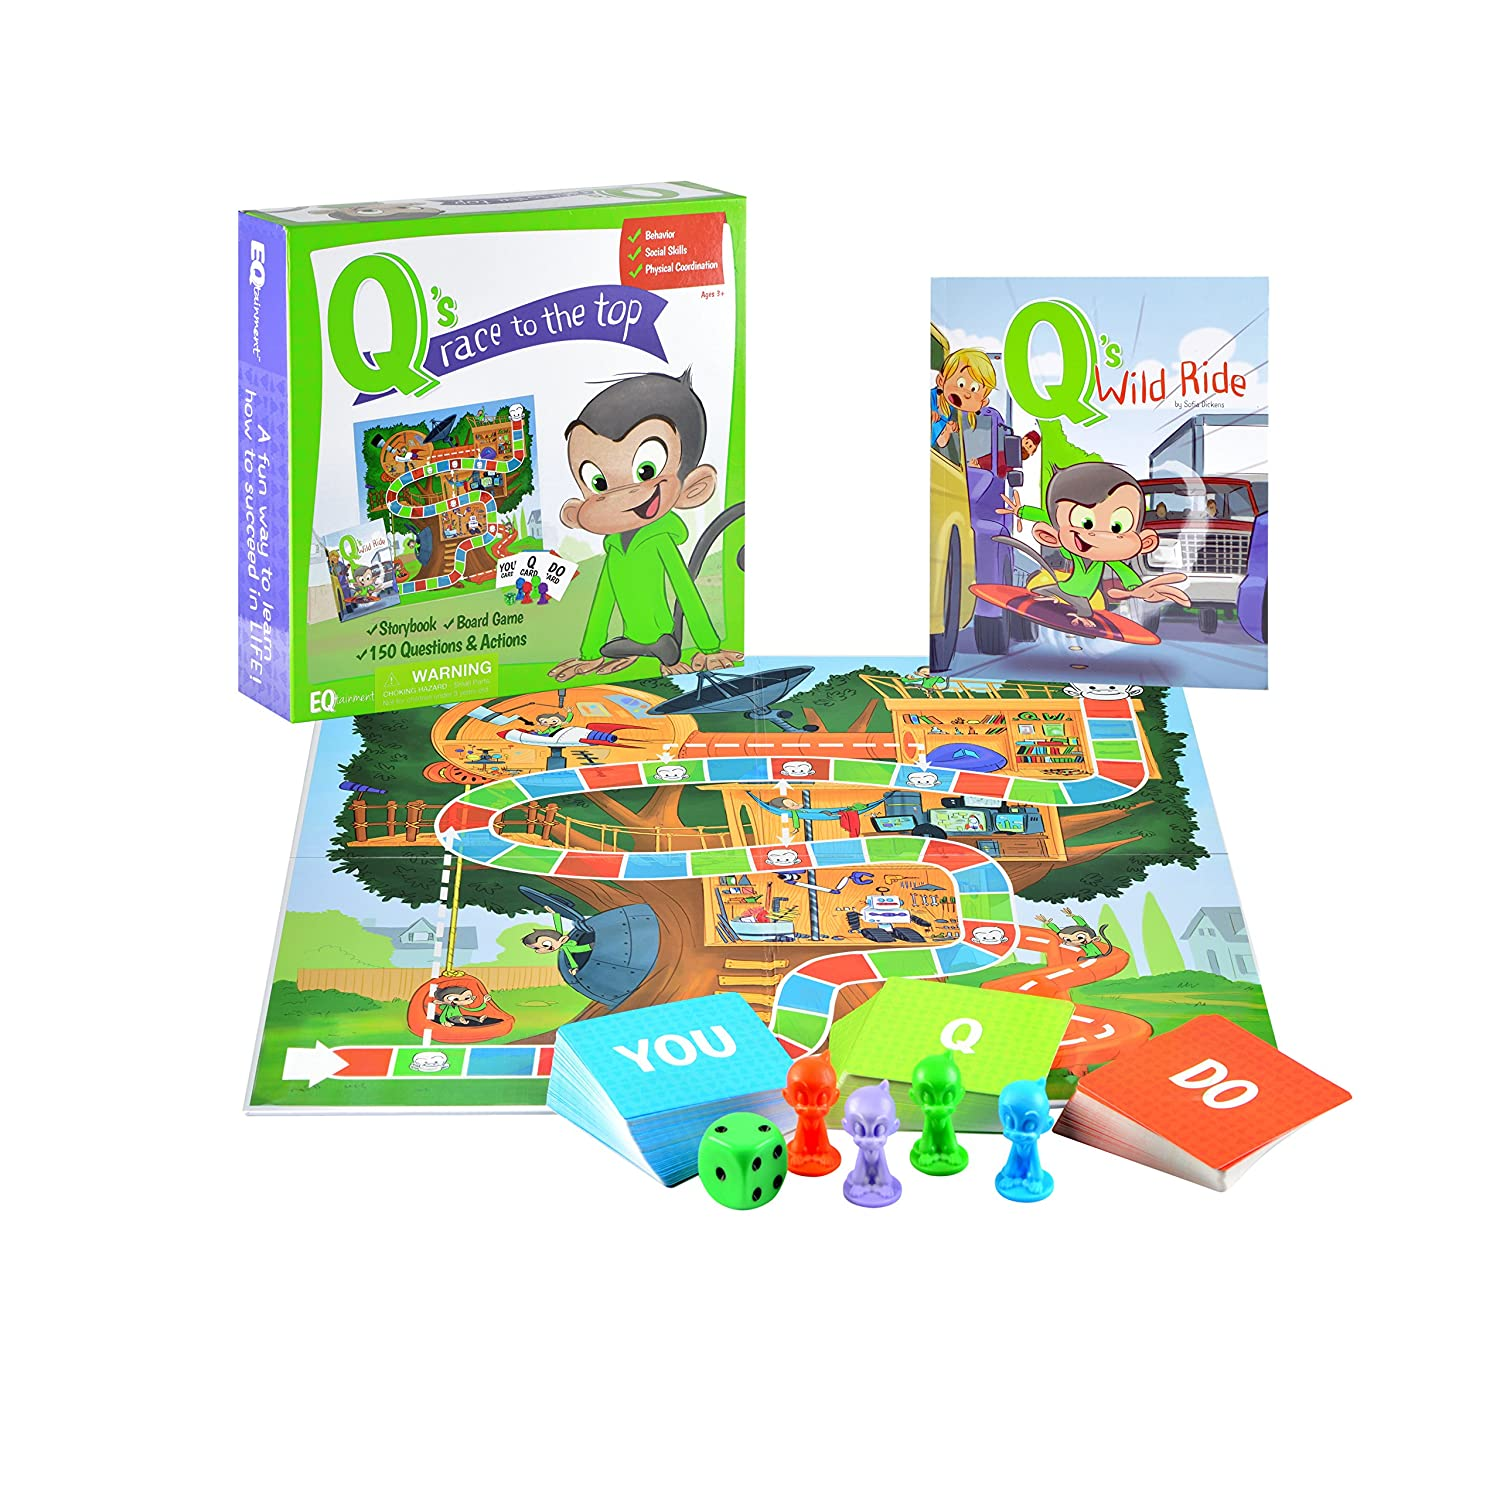 Q's Race to the Top Educational Board Game with Book: social skills, manners, and better behavior by EQtainment